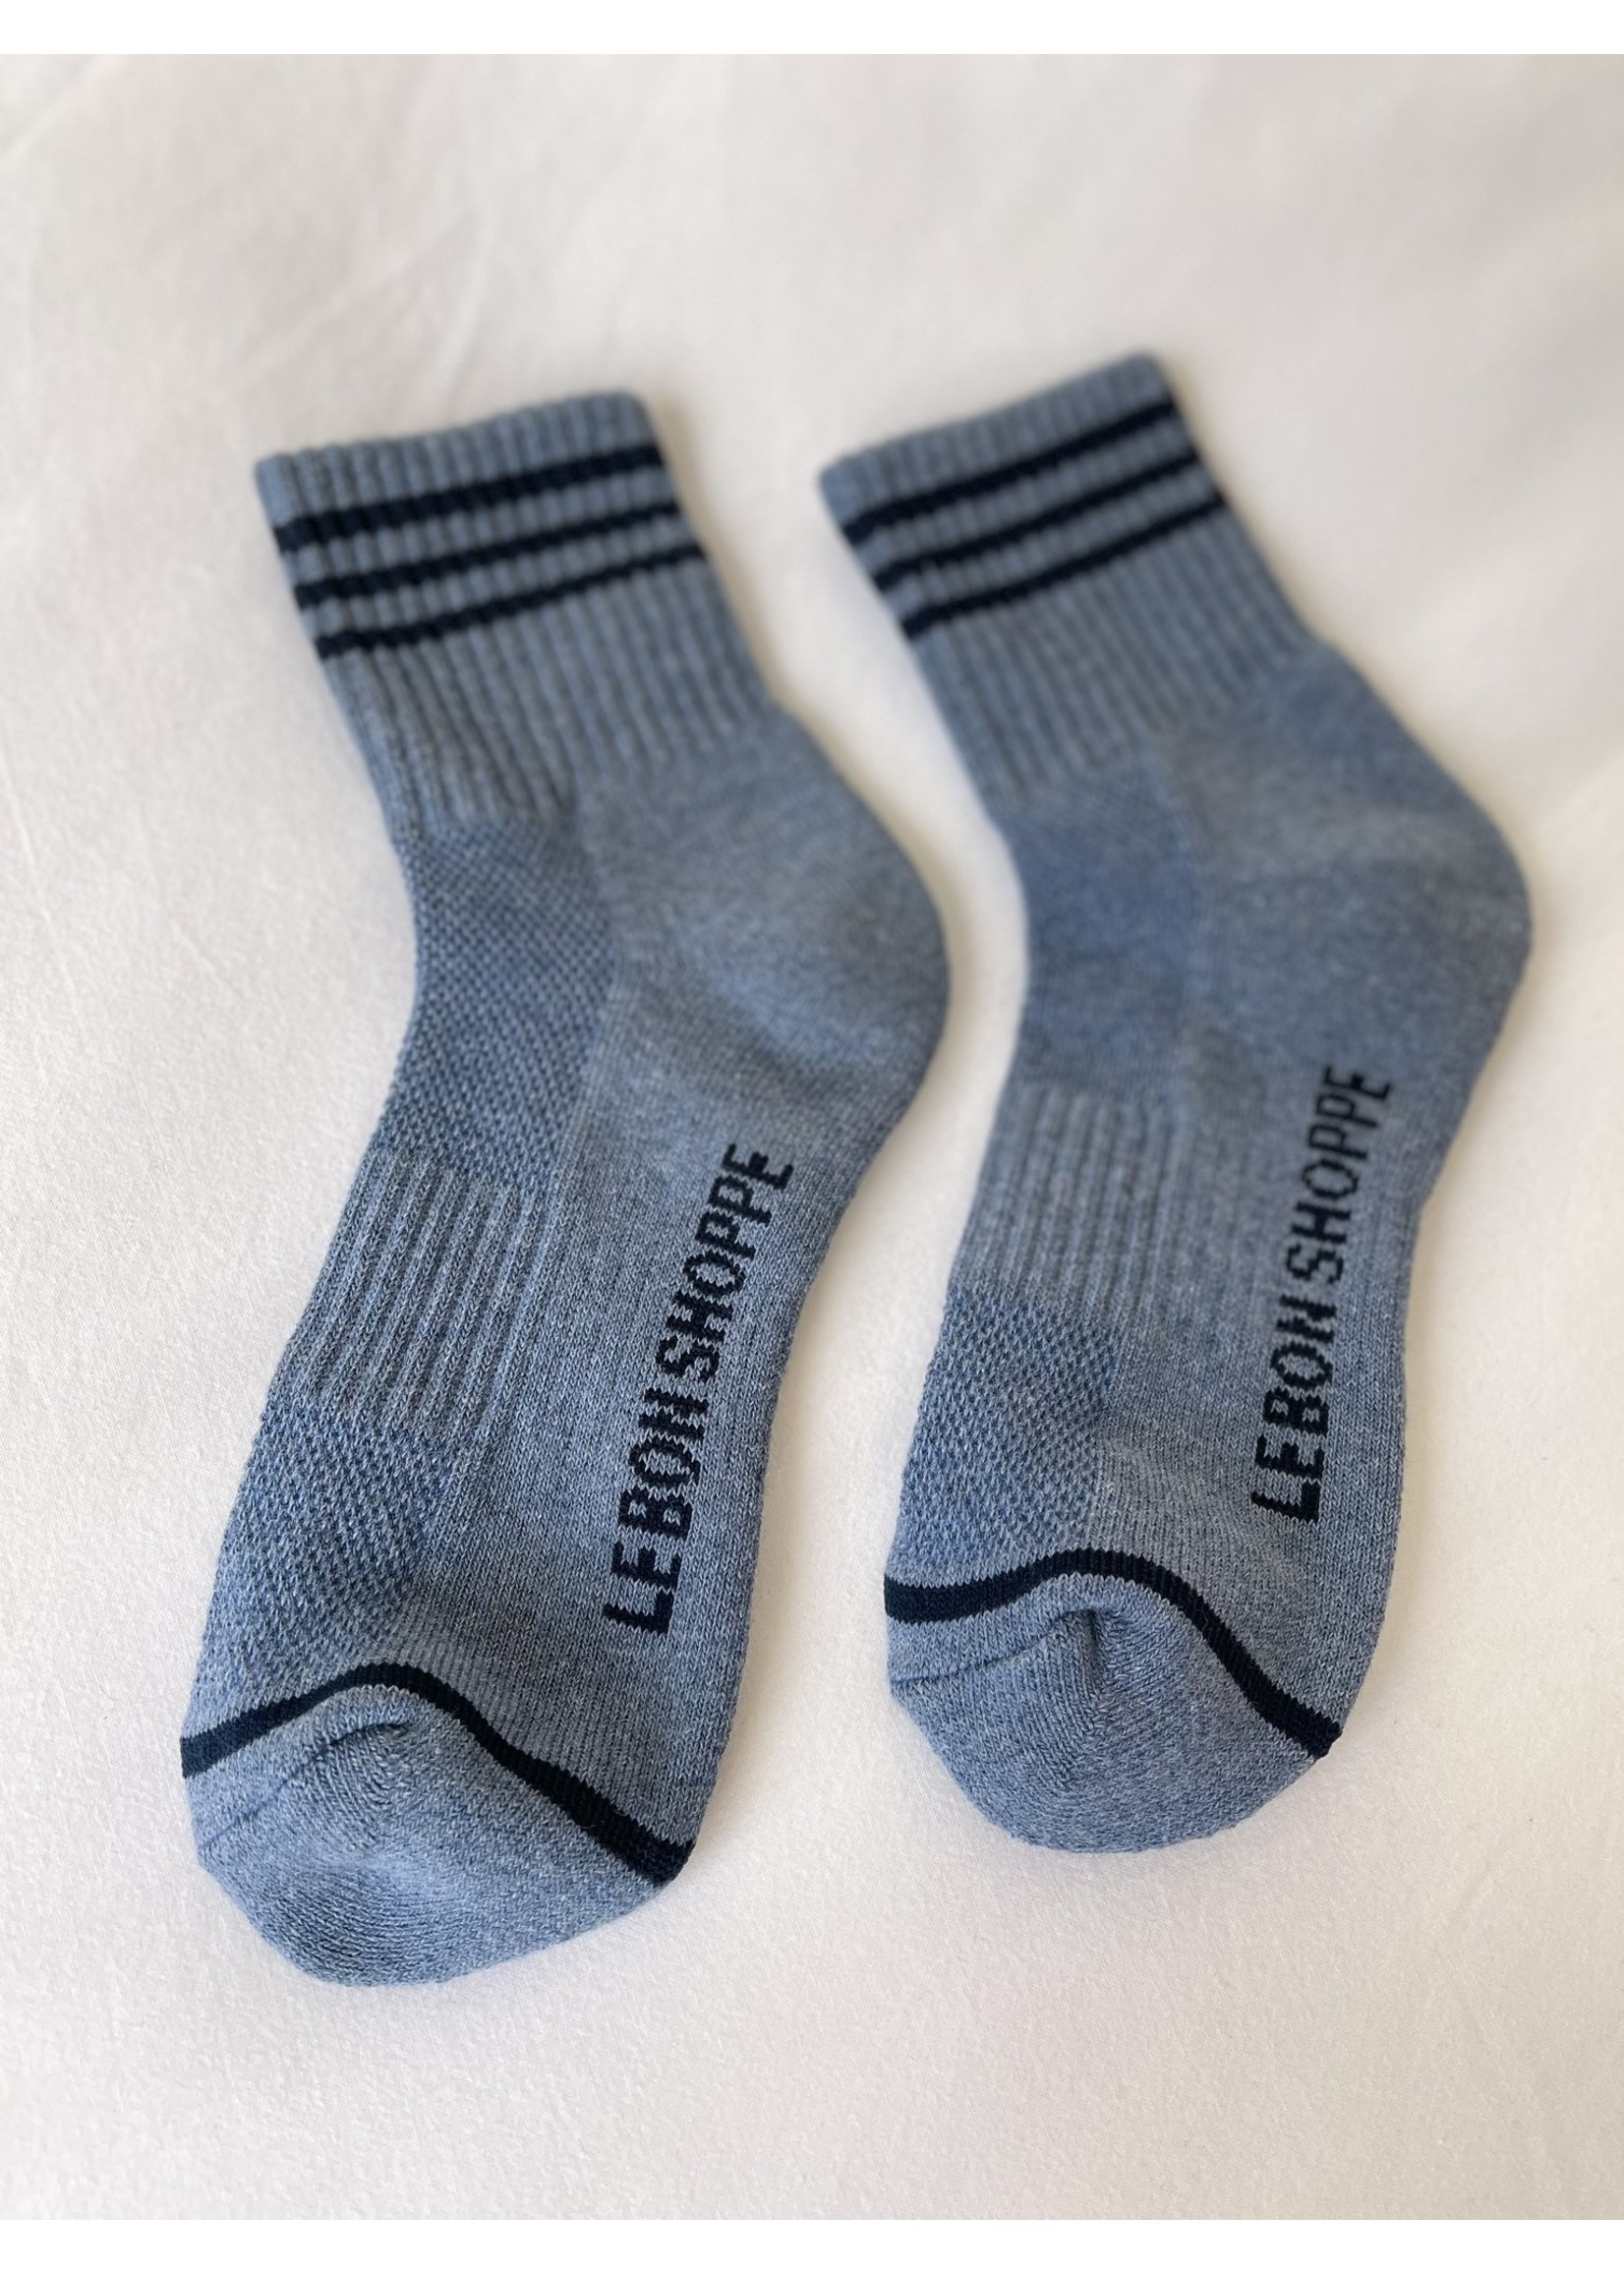 GIRLFRIEND SOCKS INDIGO